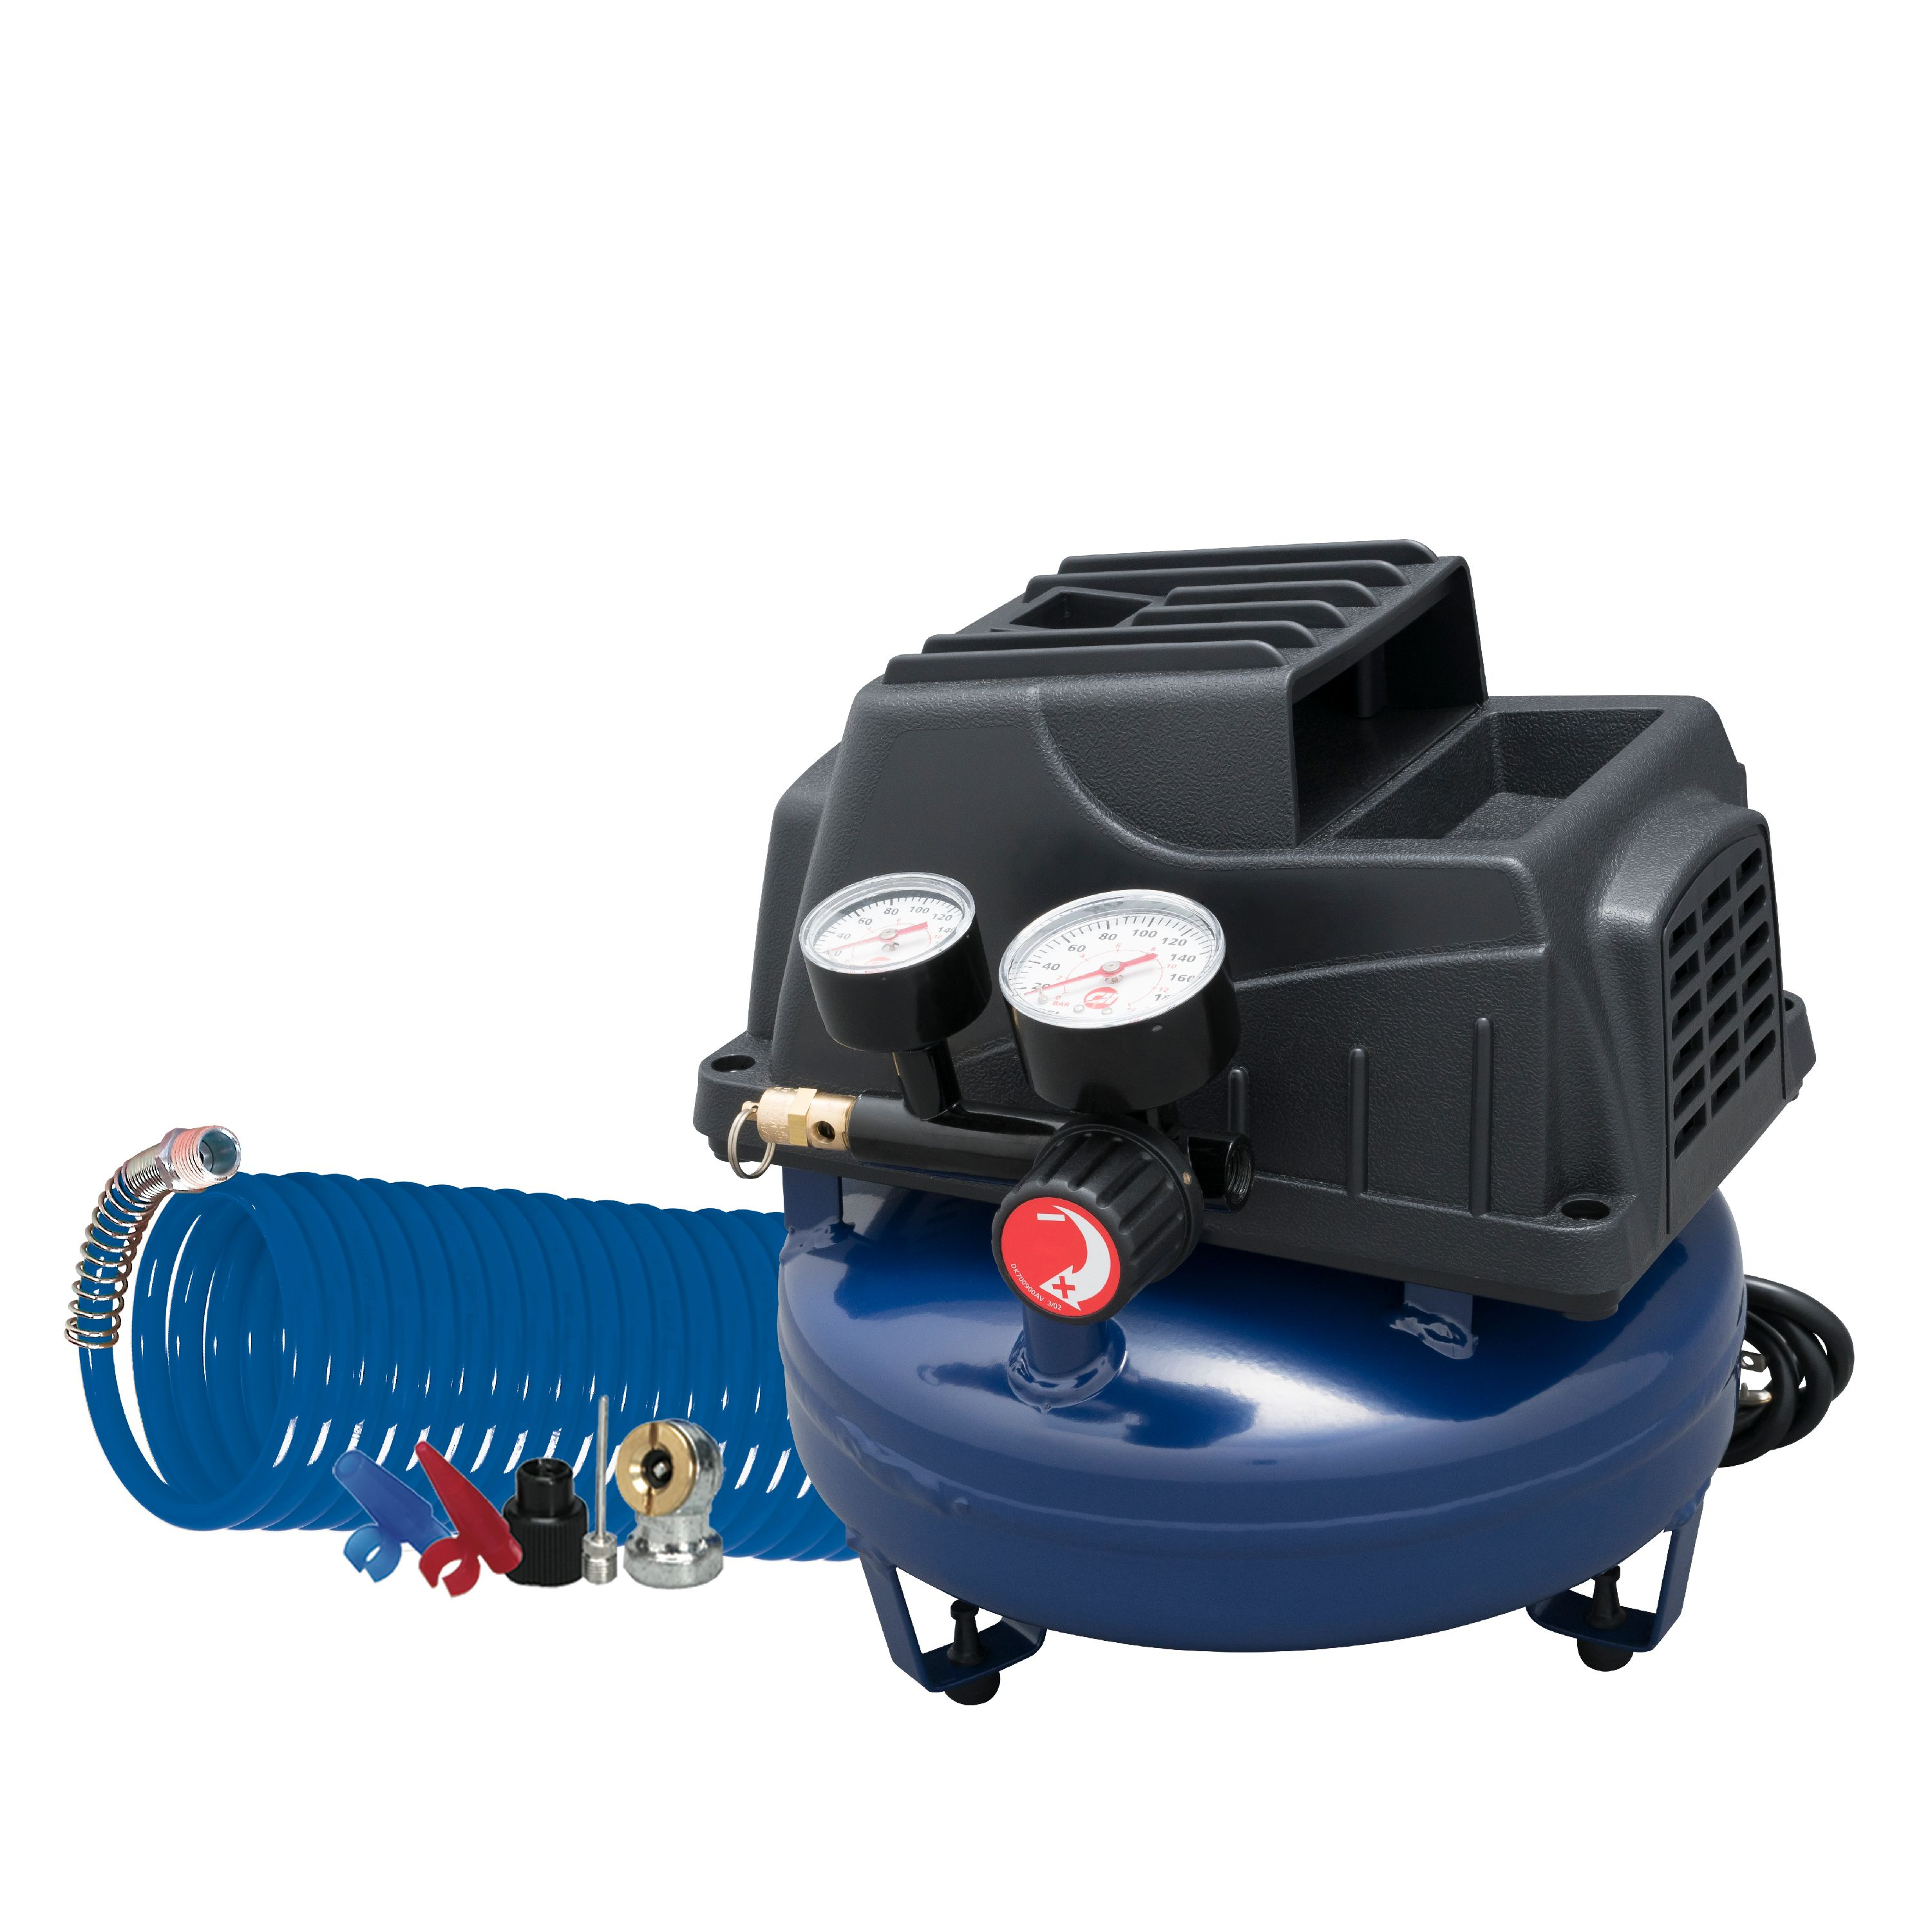 Campbell Hausfeld FP2028 1 Gallon Air Compressor